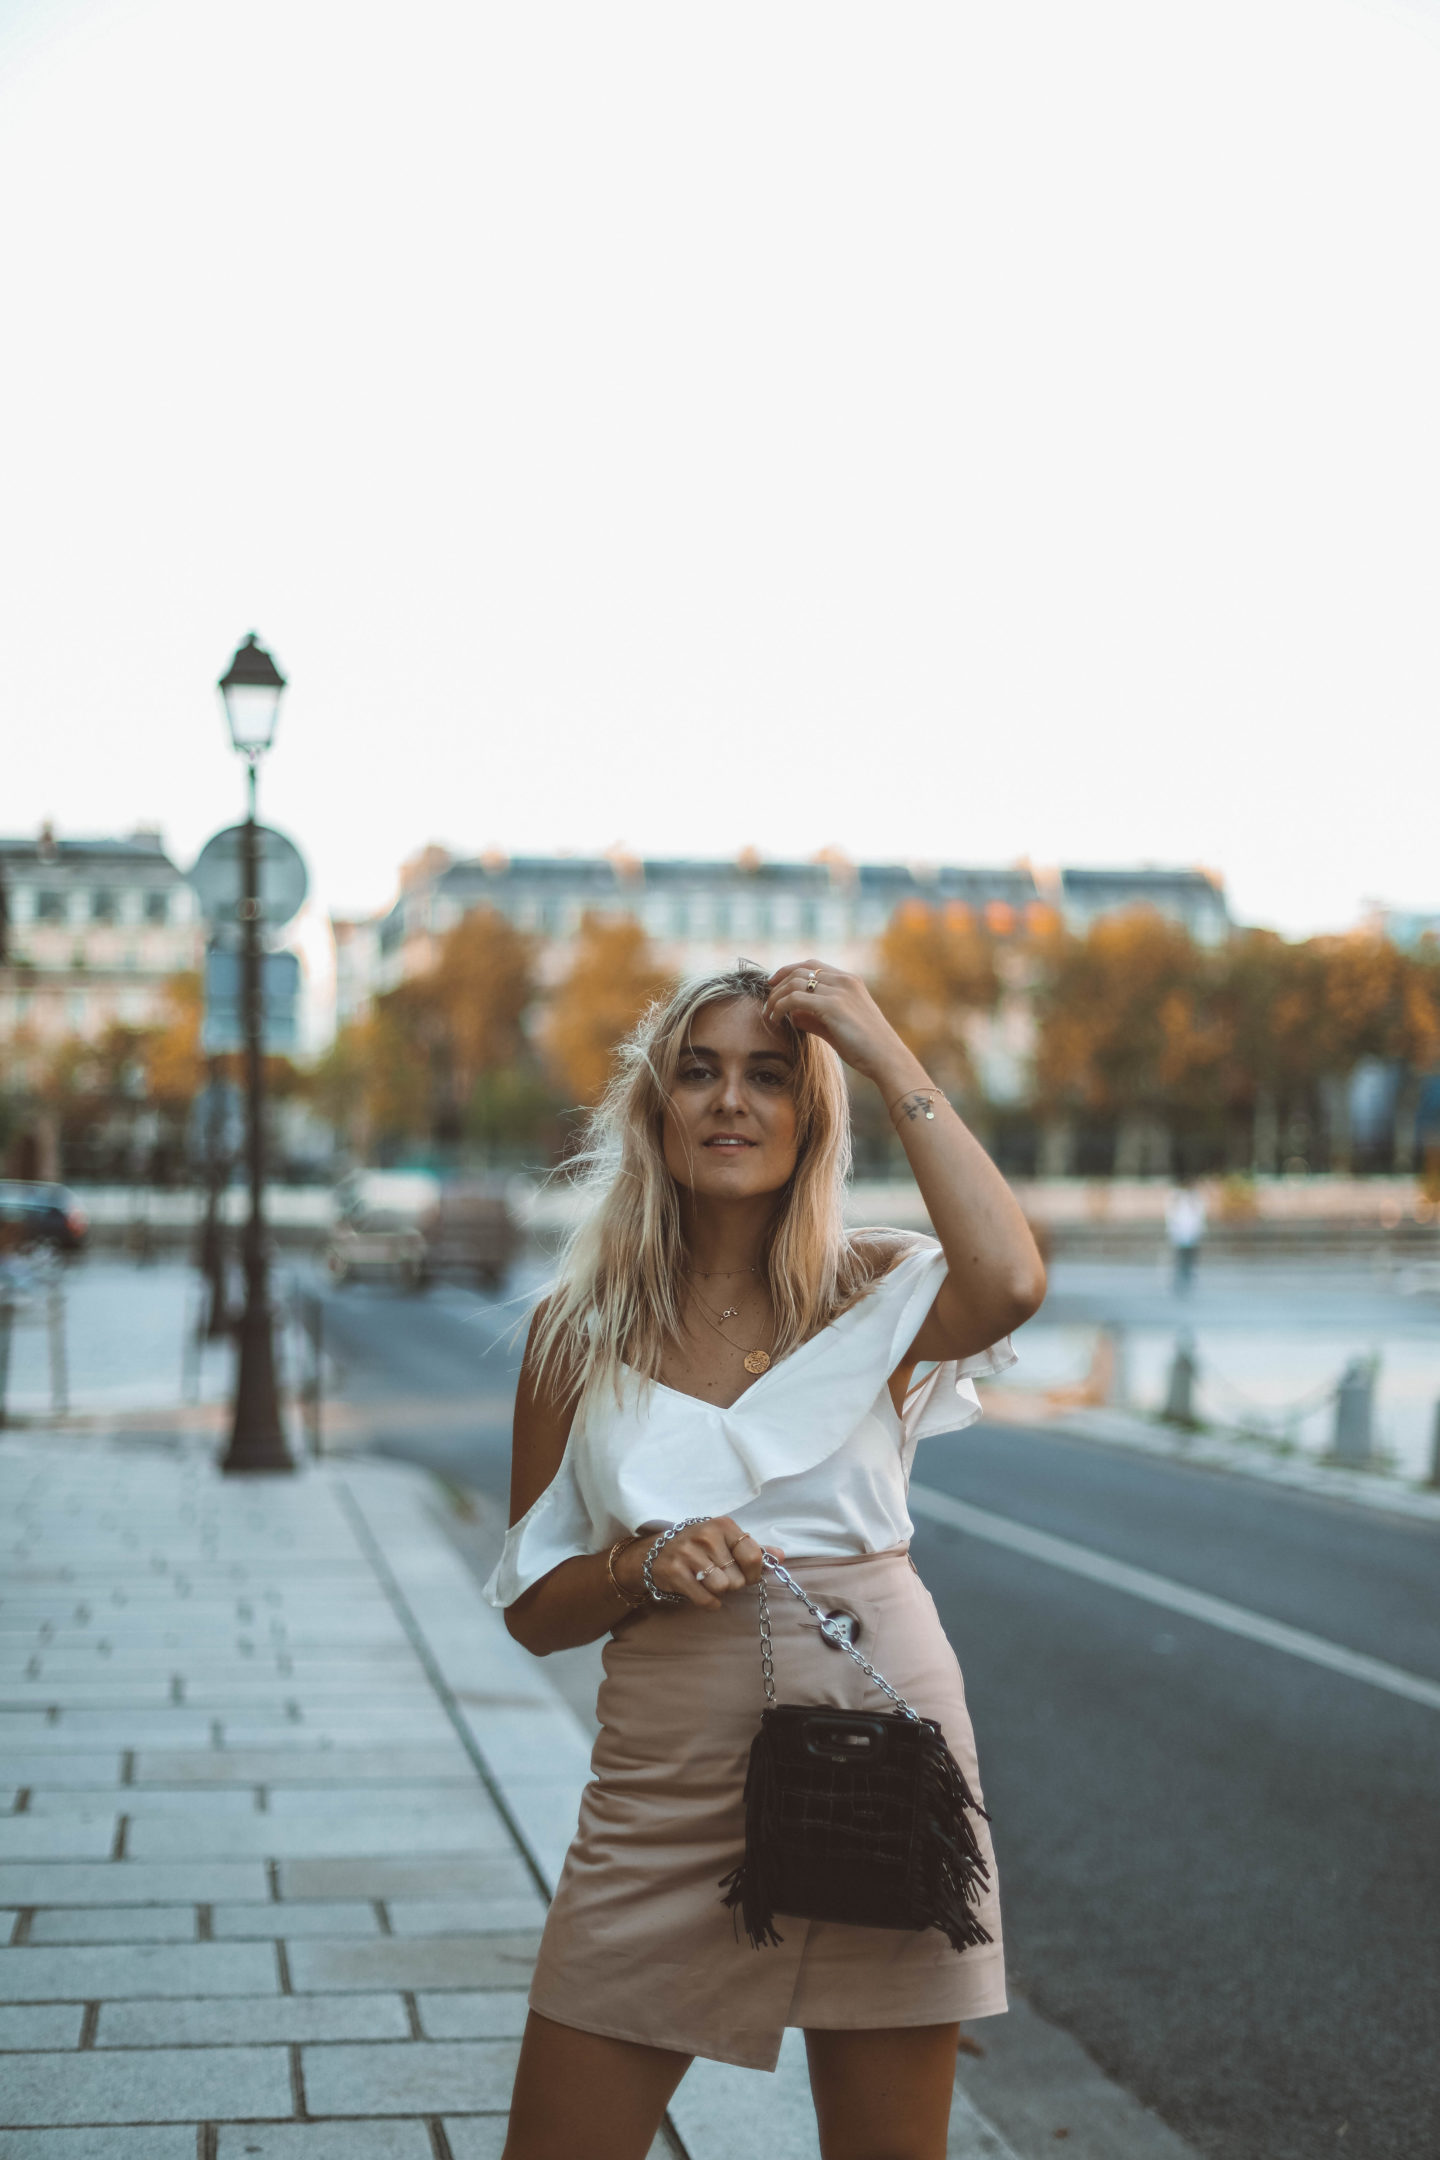 Golden Hour - Blondie baby blog mode Paris et voyages